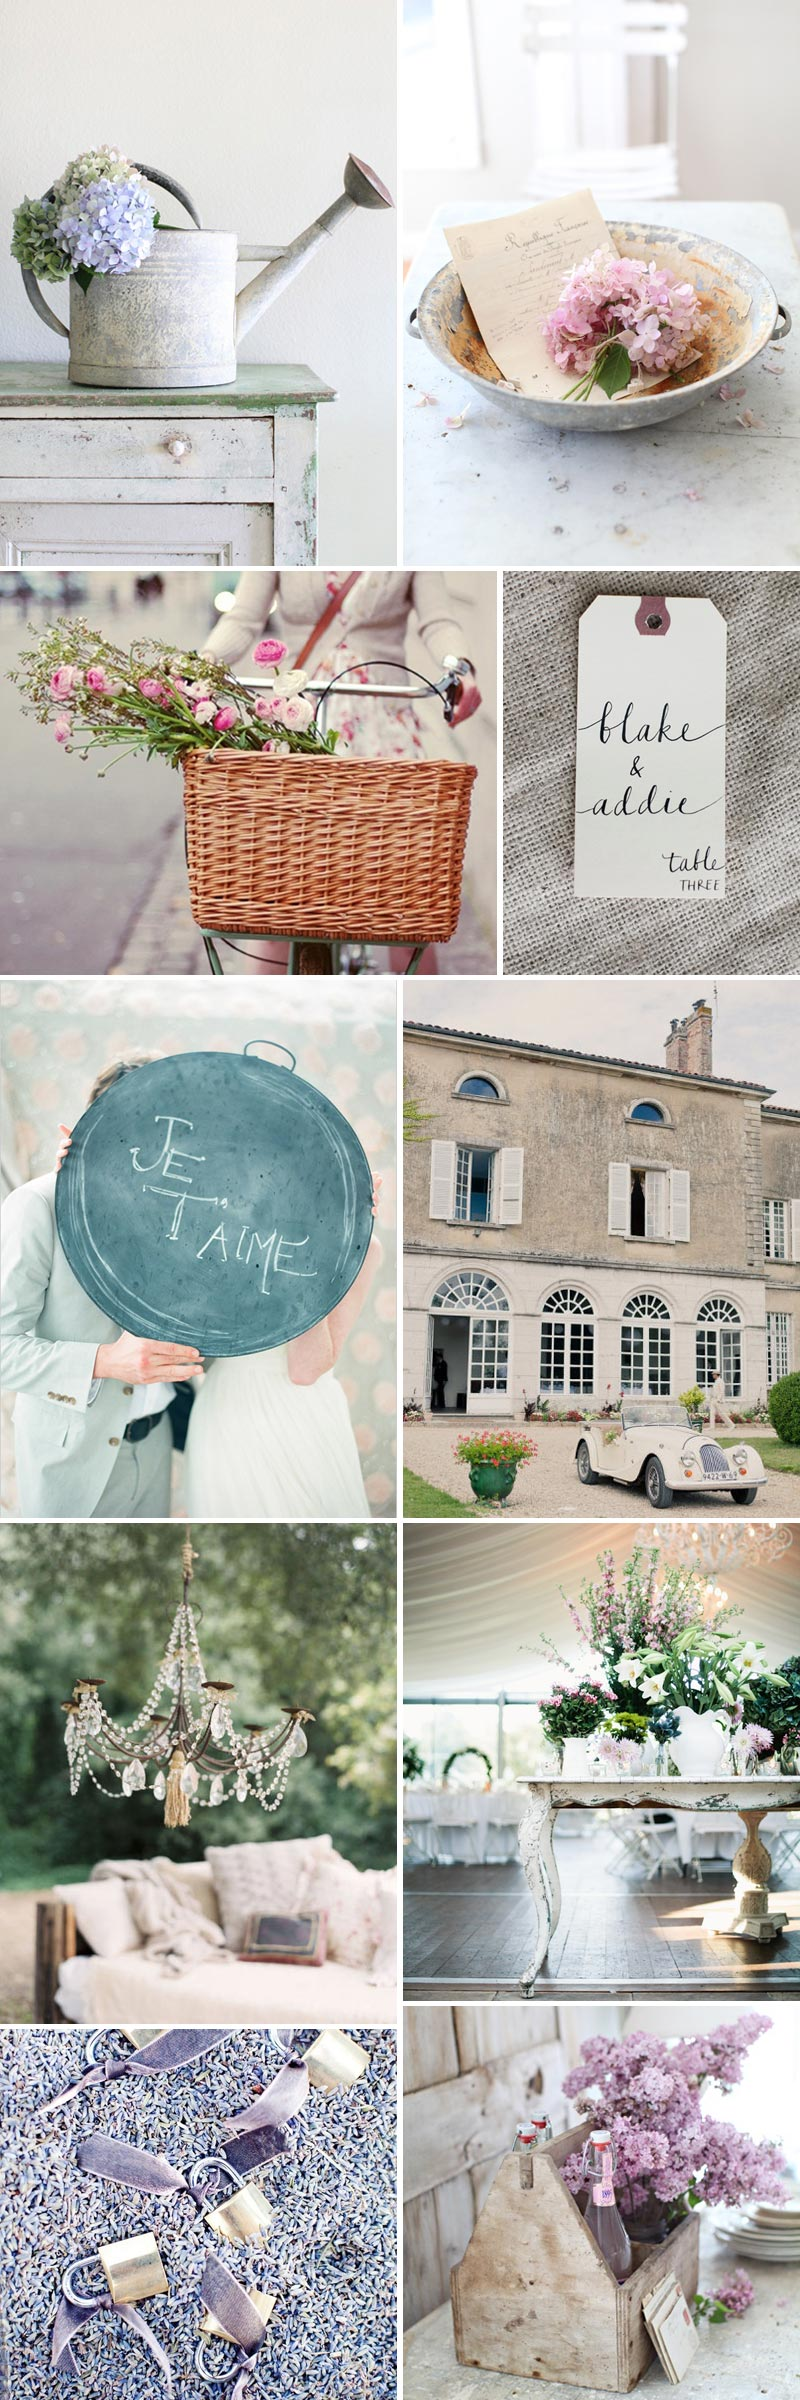 Campagne Chic En Provence.